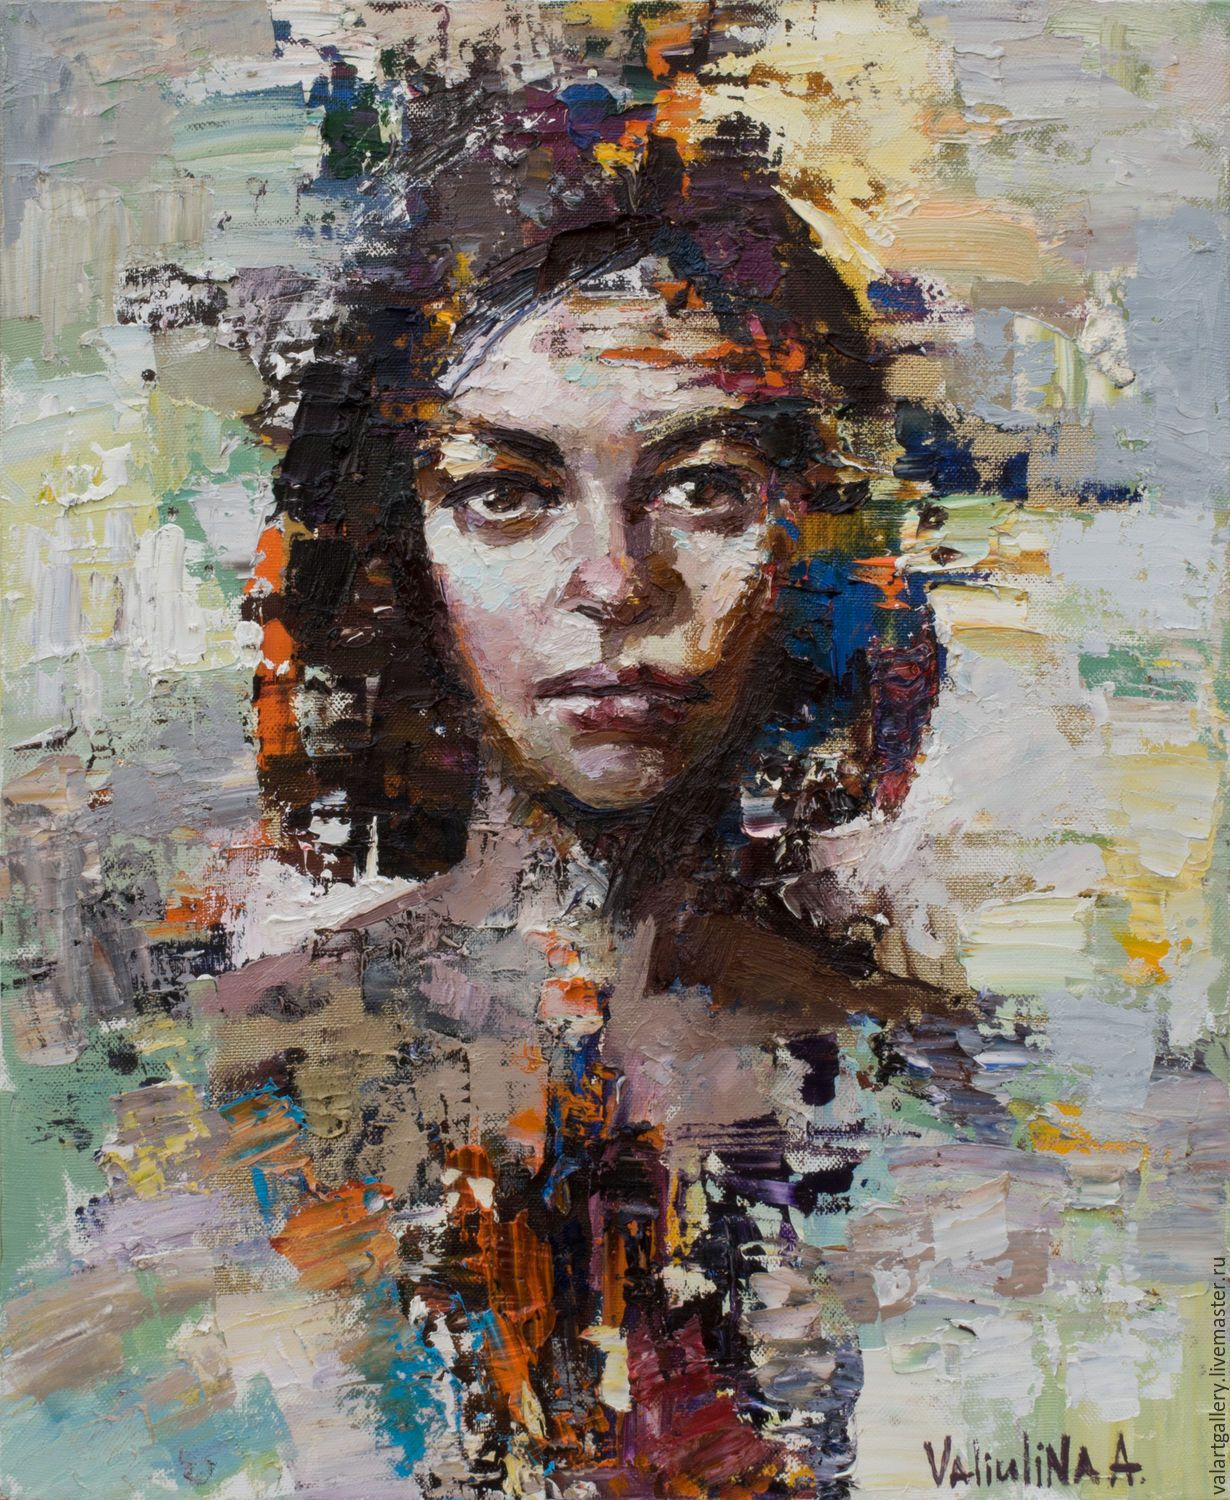 Abstract woman portrait painting original oil painting